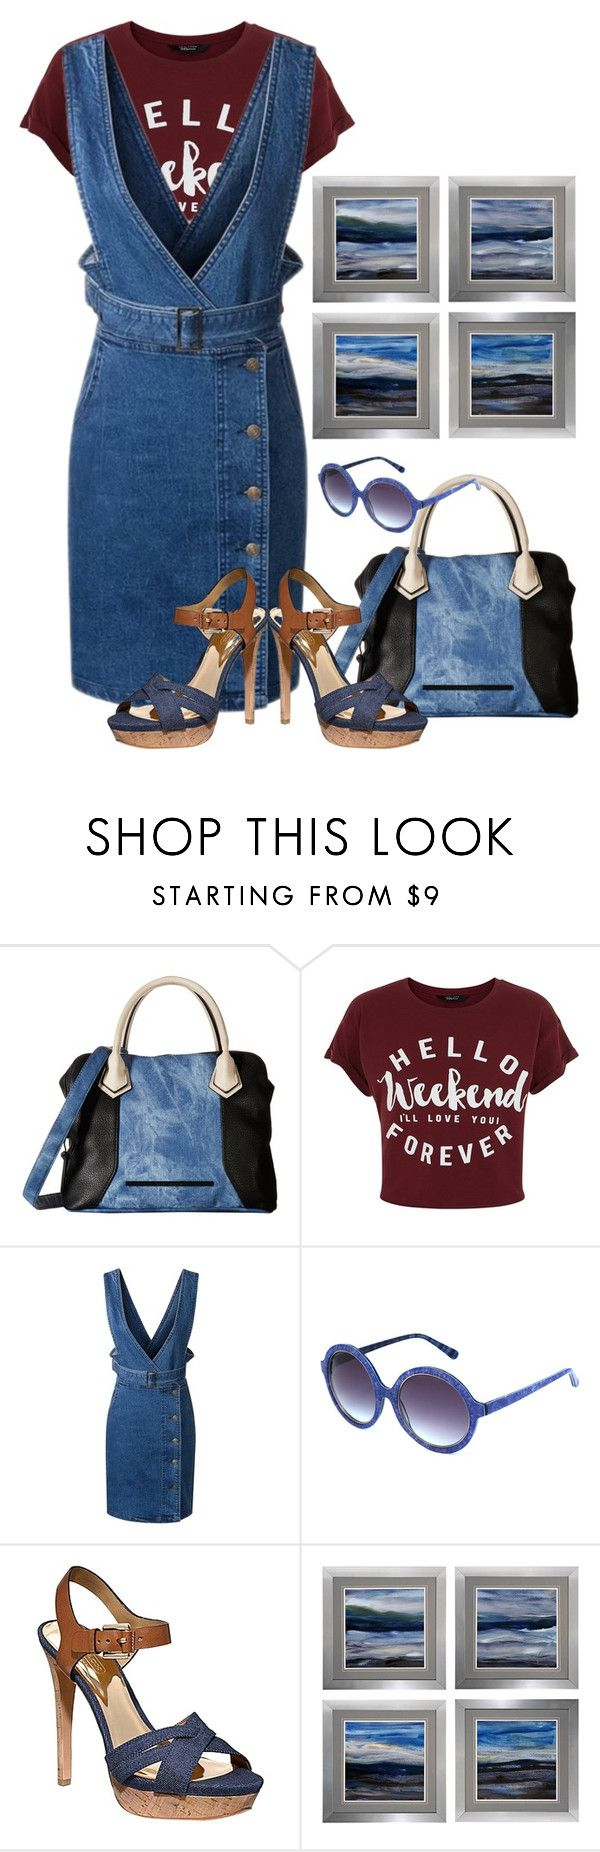 """""""Shirts with sayings."""" by nefertiti1373 ❤ liked on Polyvore featuring Steve Madden, Heidi London, Coach and Universal Lighting and Decor"""